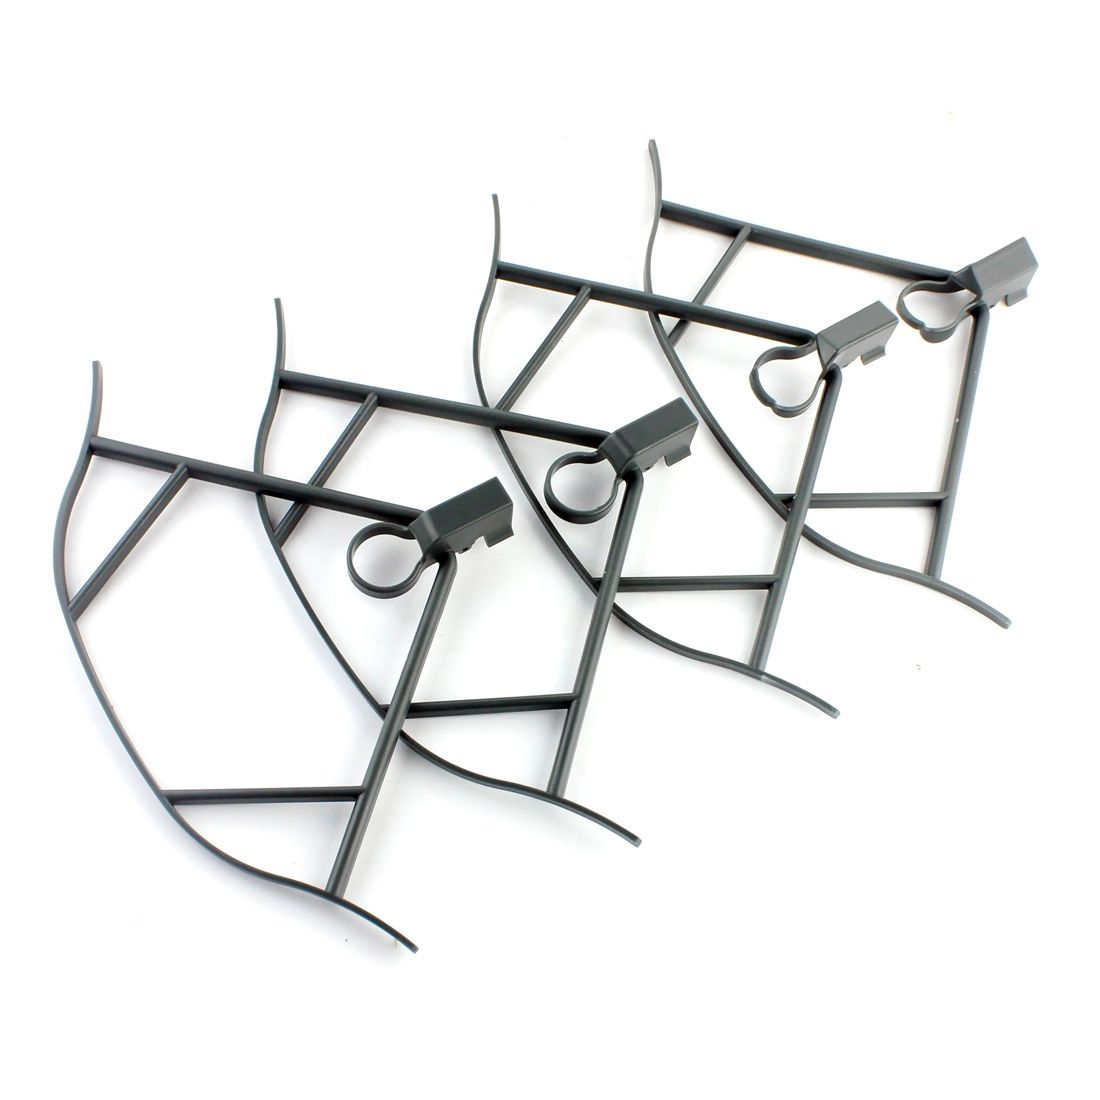 4Pcs/lot Propeller Bumpers Quick Release Removable Prop Guards Blade Drone Protector Bumper for DJI Mavic Pro F19568